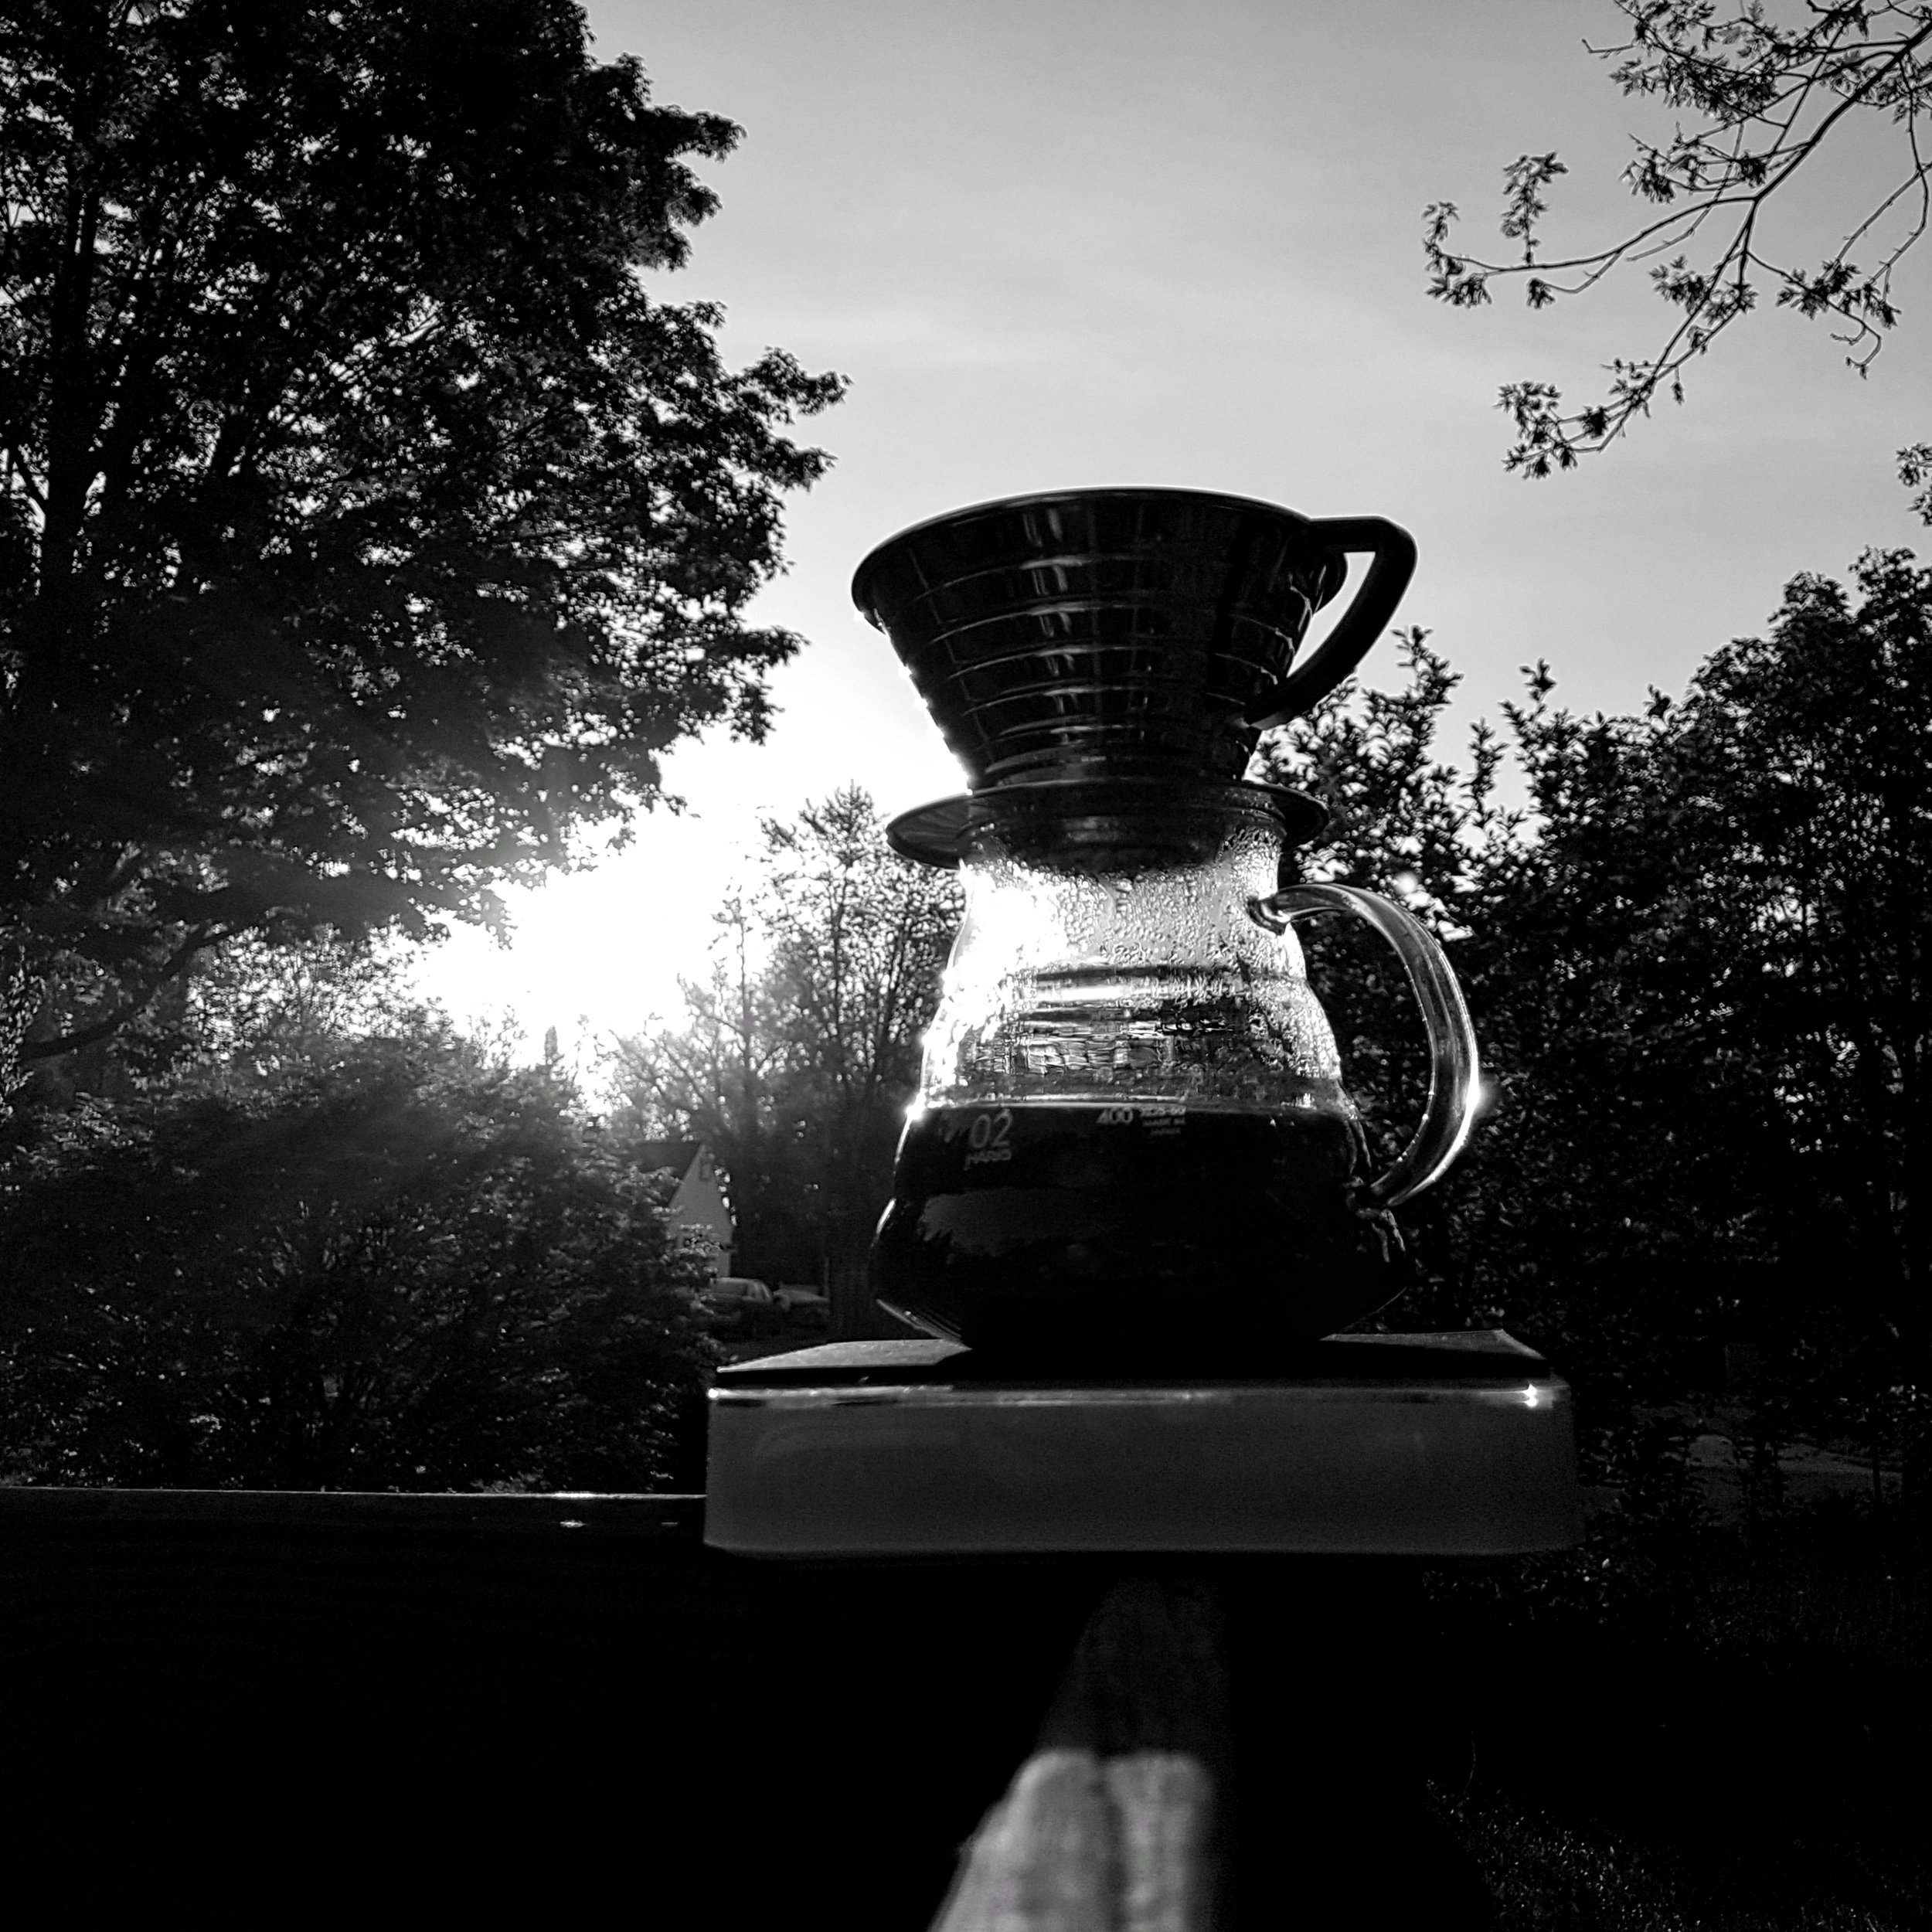 A Kalita Wave coffee brewer on a scale on a fence against a sunrise